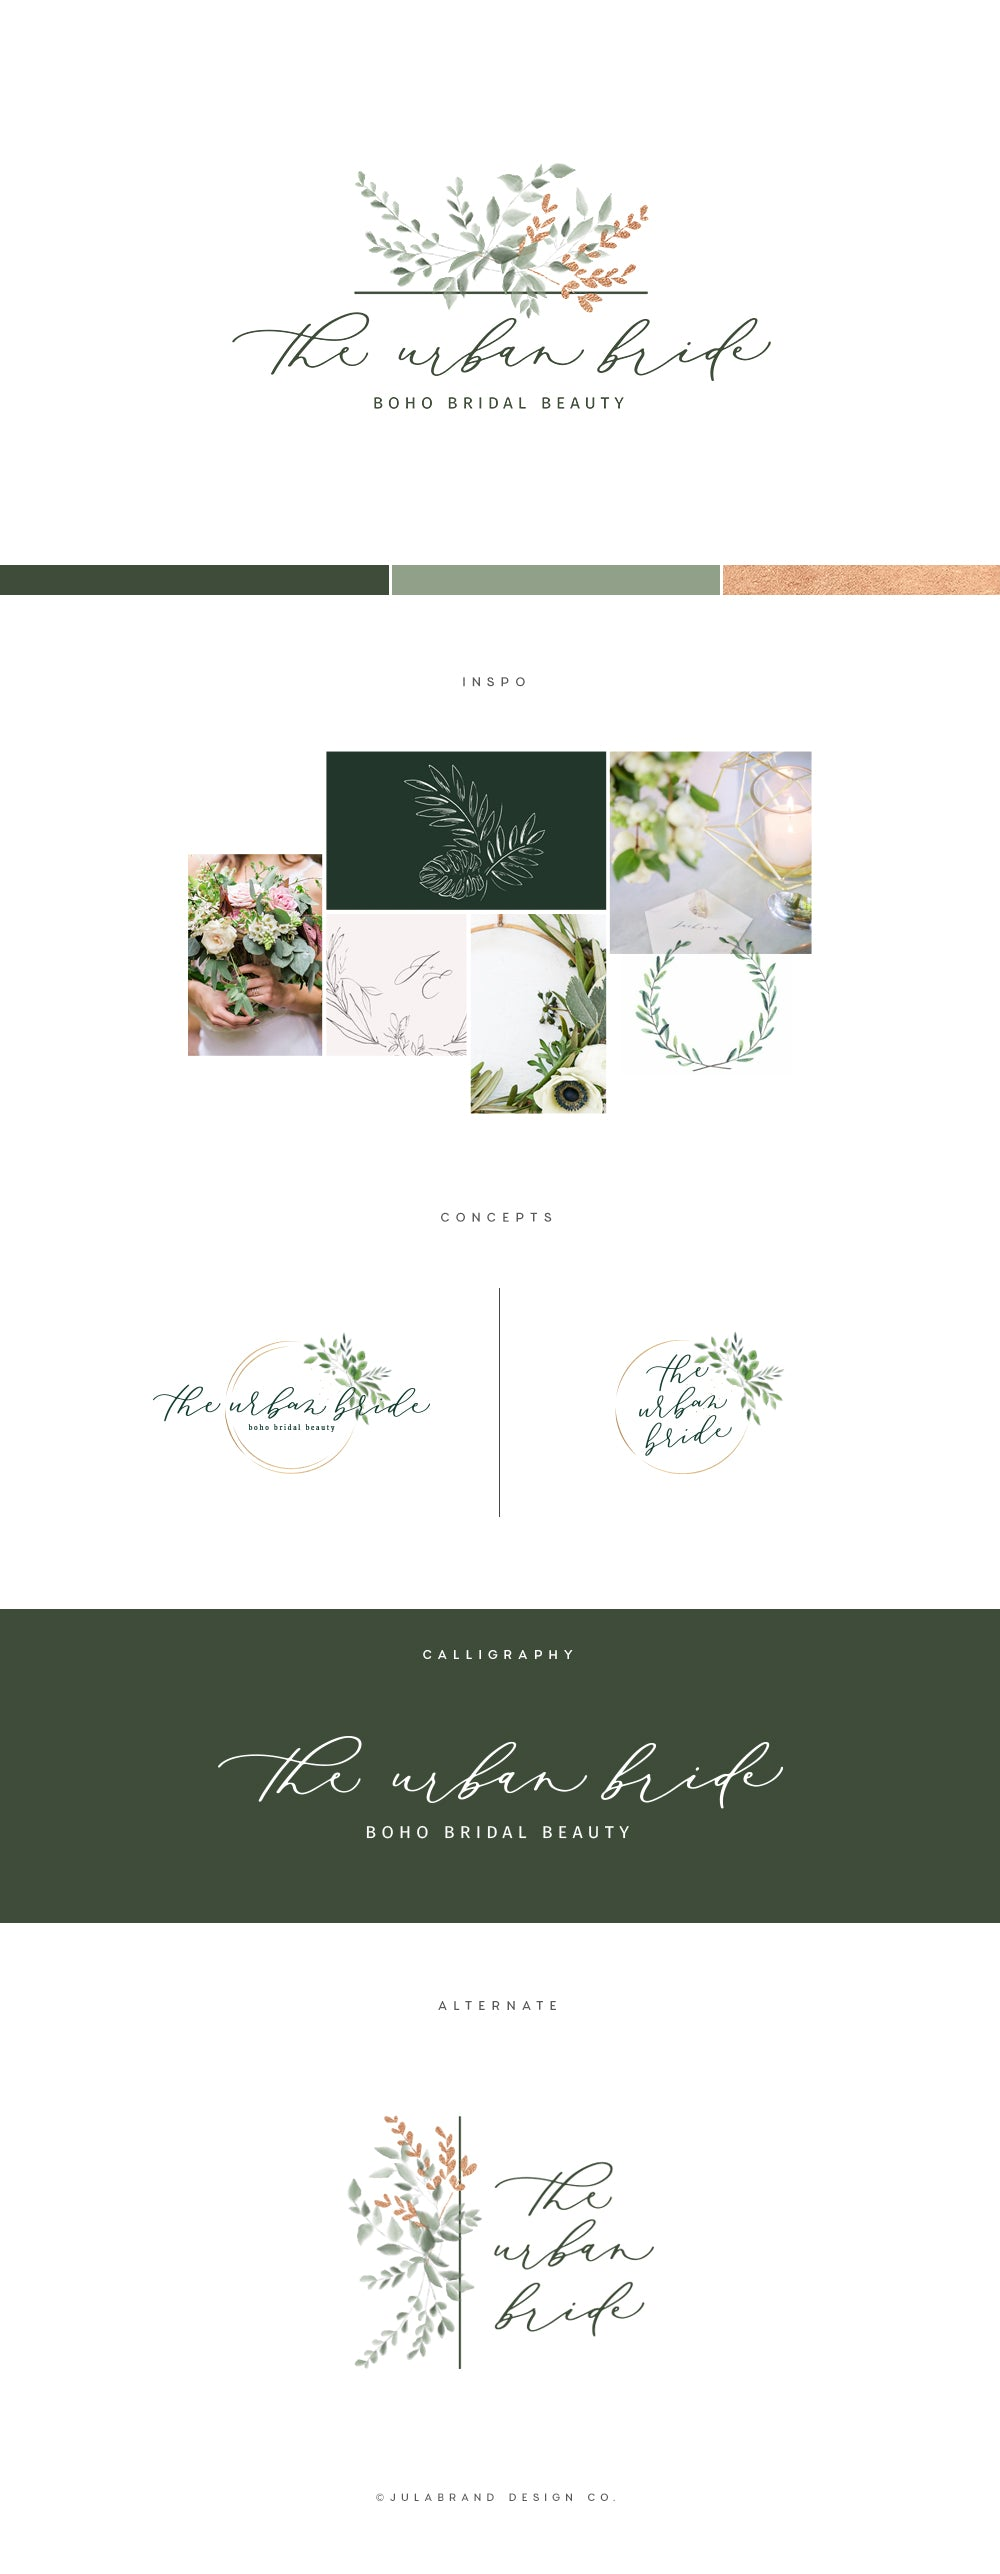 Brand map with modern calligraphy logo for boho bridal beauty business